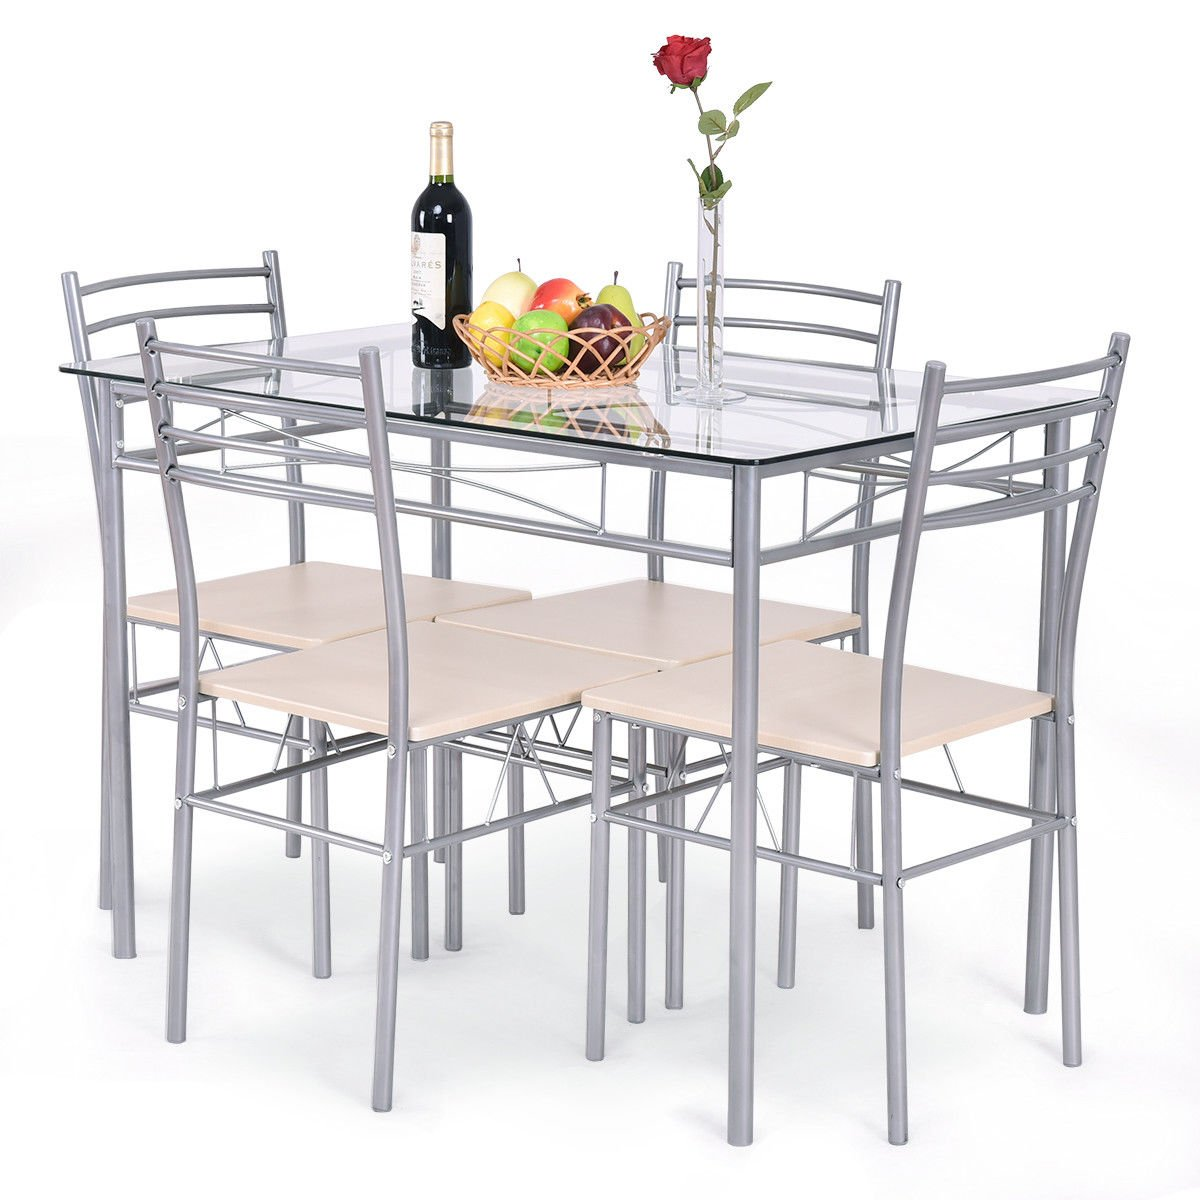 giantex 5 piece dining set table and 4 chairs glass top kitchen breakfast furniture lavorist. Black Bedroom Furniture Sets. Home Design Ideas